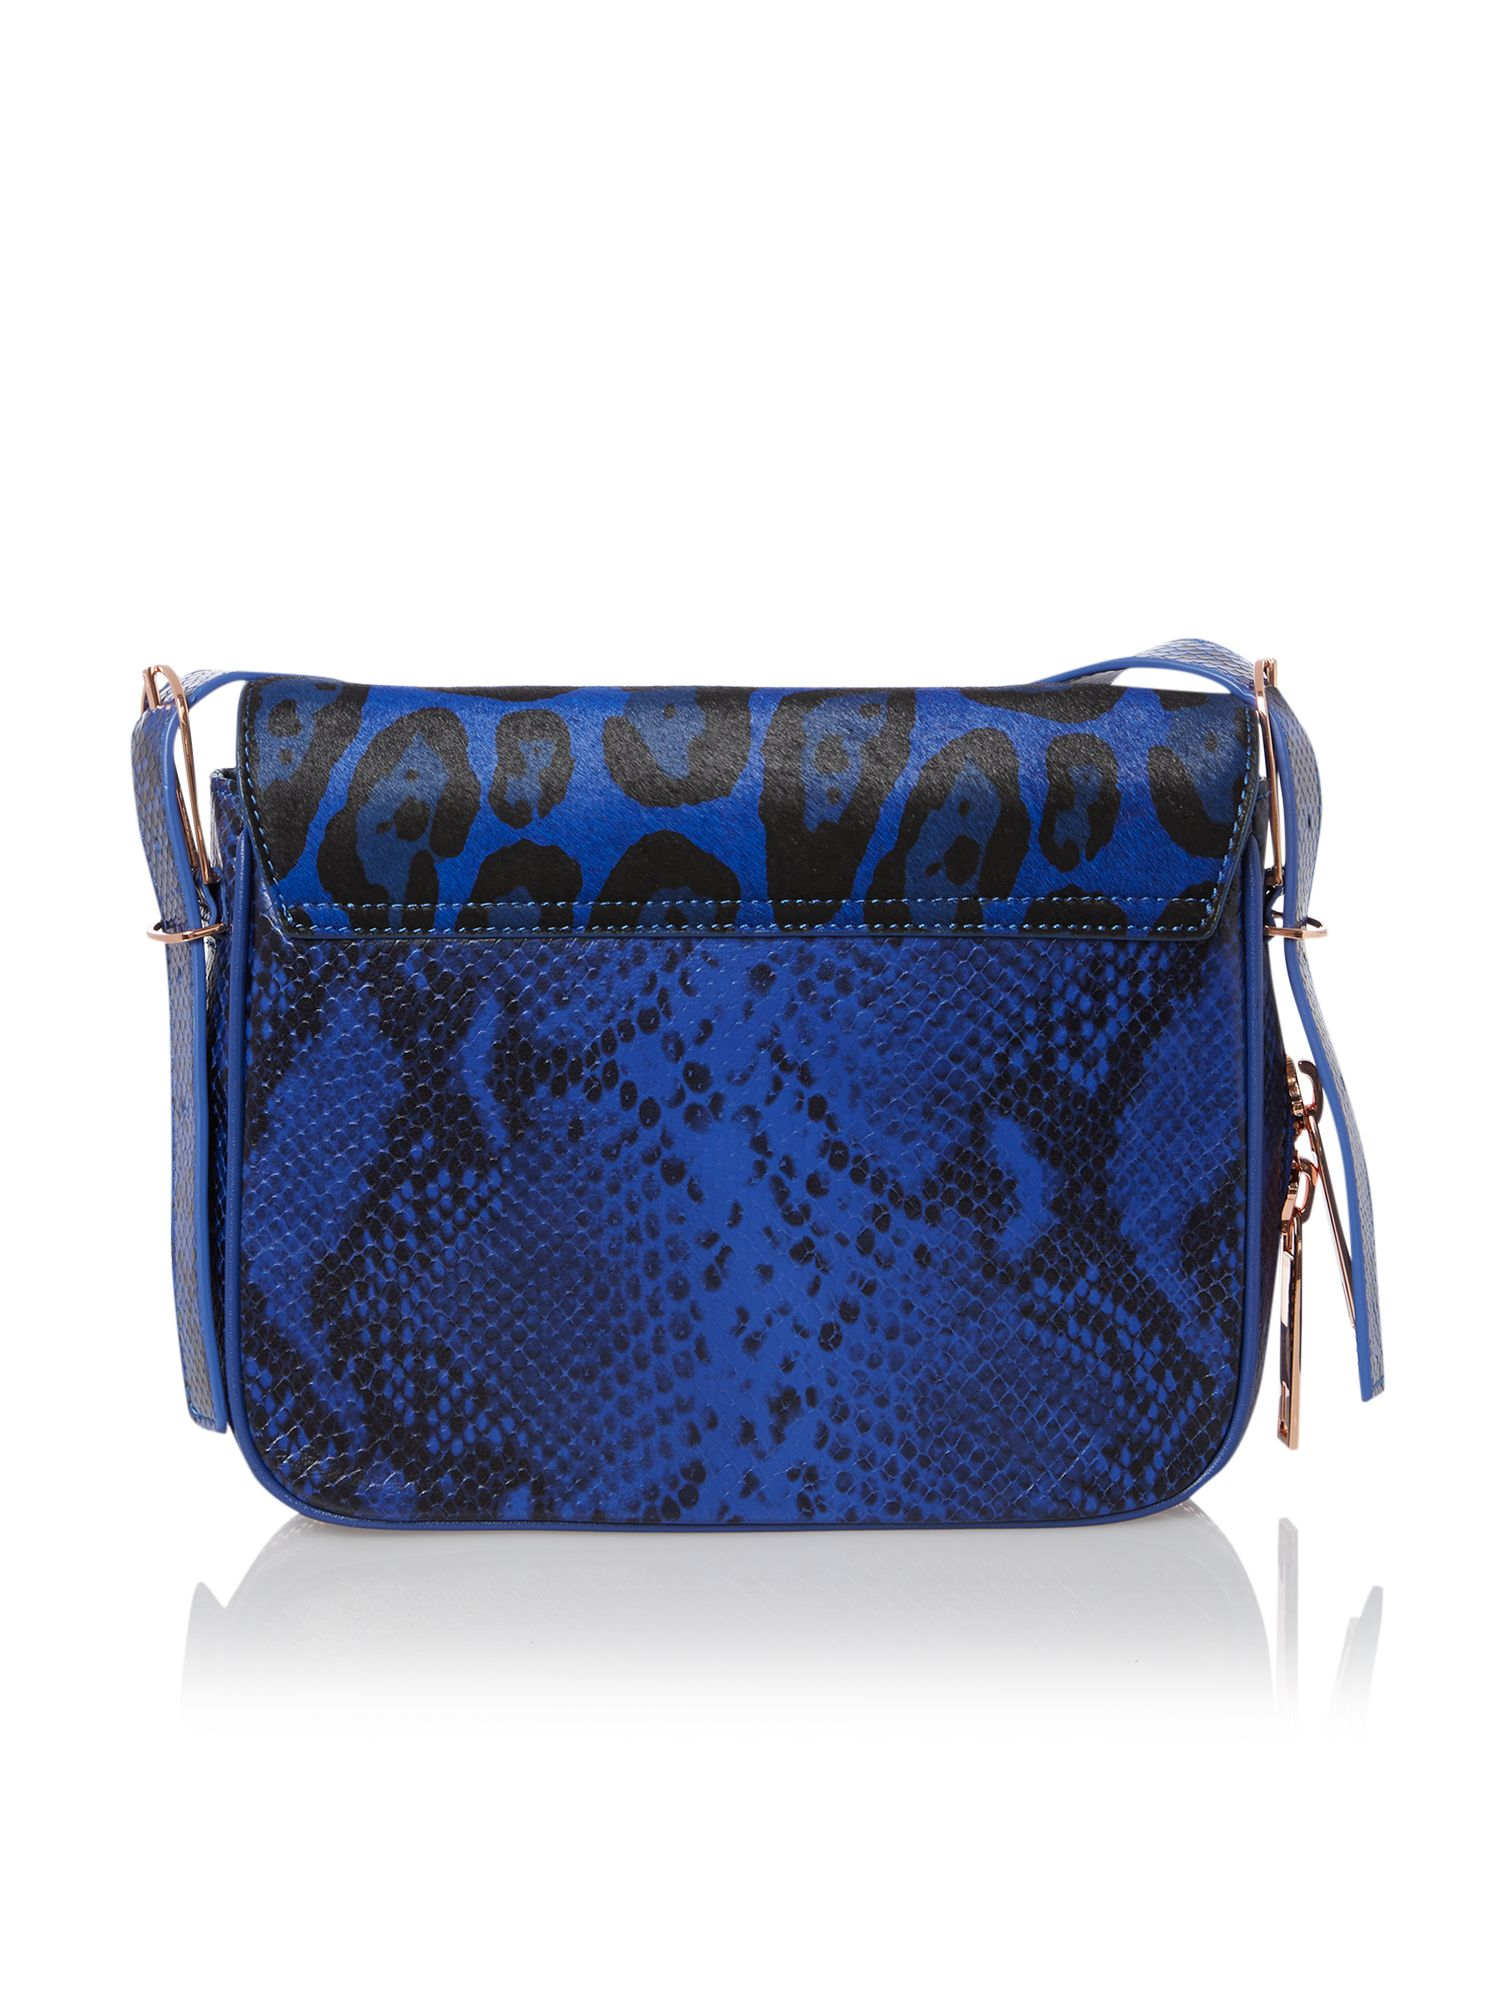 Blue animal print cross body bag